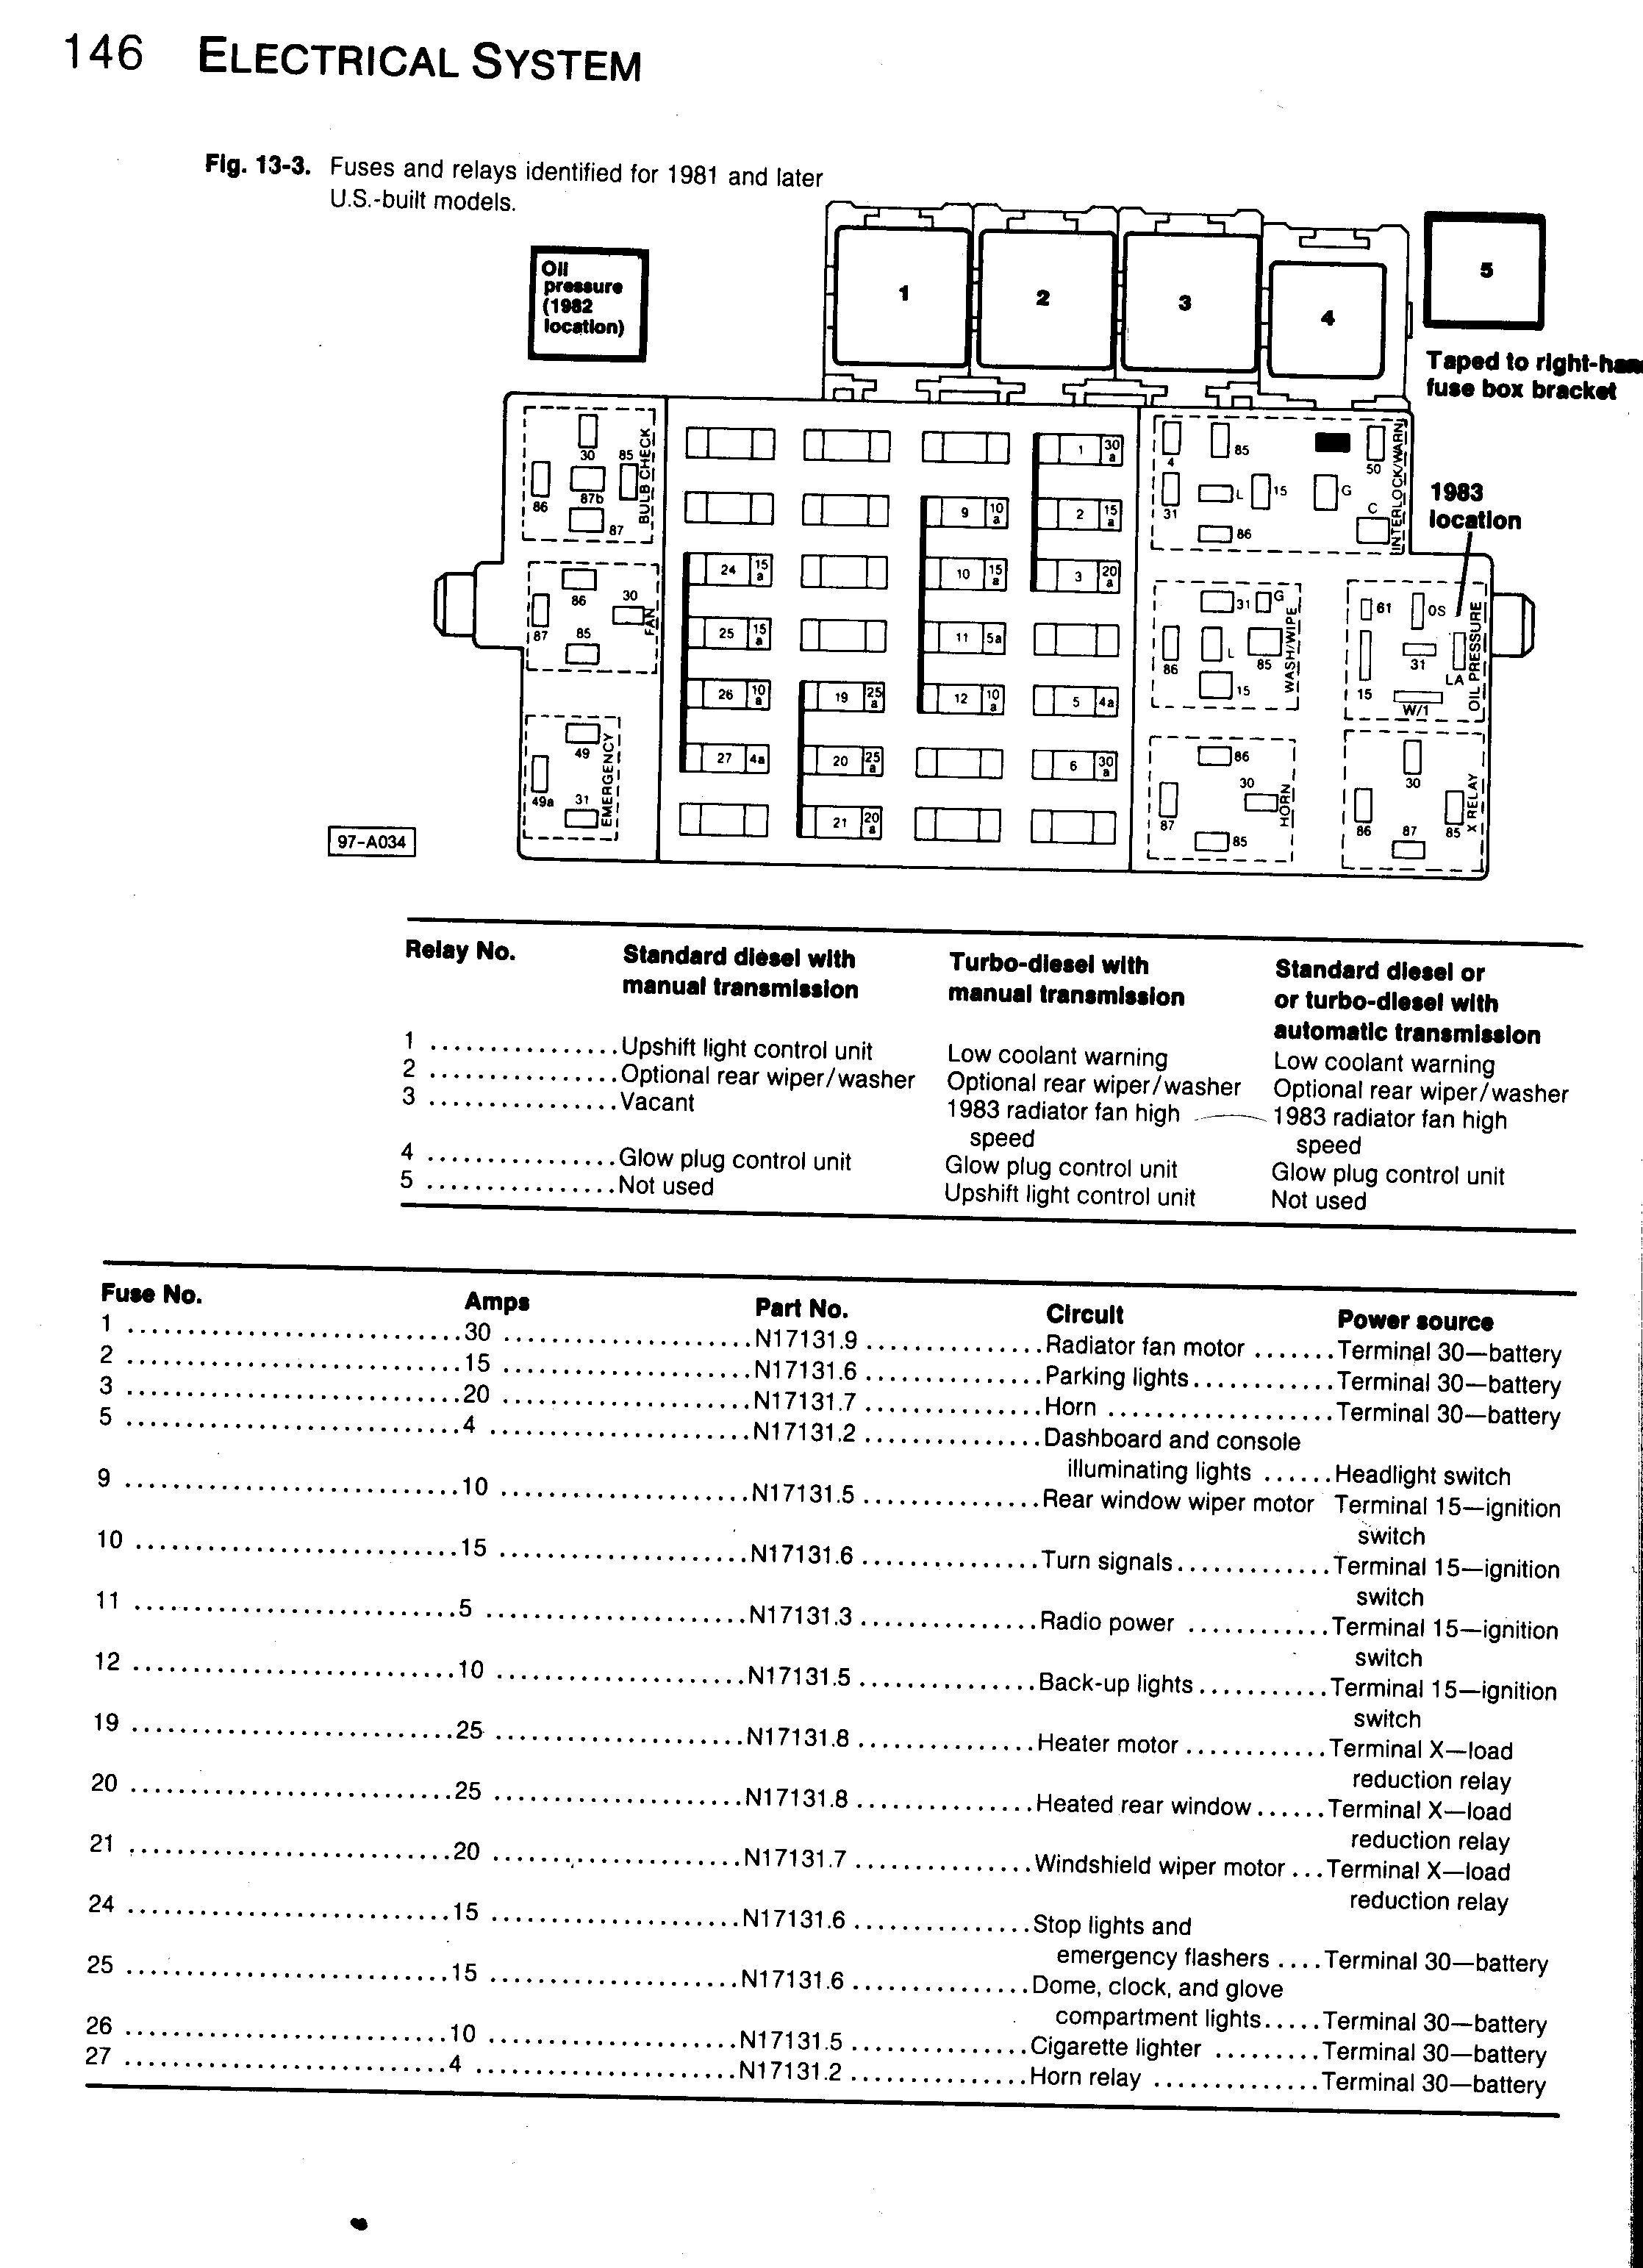 2001 Dodge Grand Caravan Fuse Box Location 2003 Xk8 Diagram Wiring Library Gli Online Schematics Rh Delvato Co 2012 Jetta Panel 2006 Vw